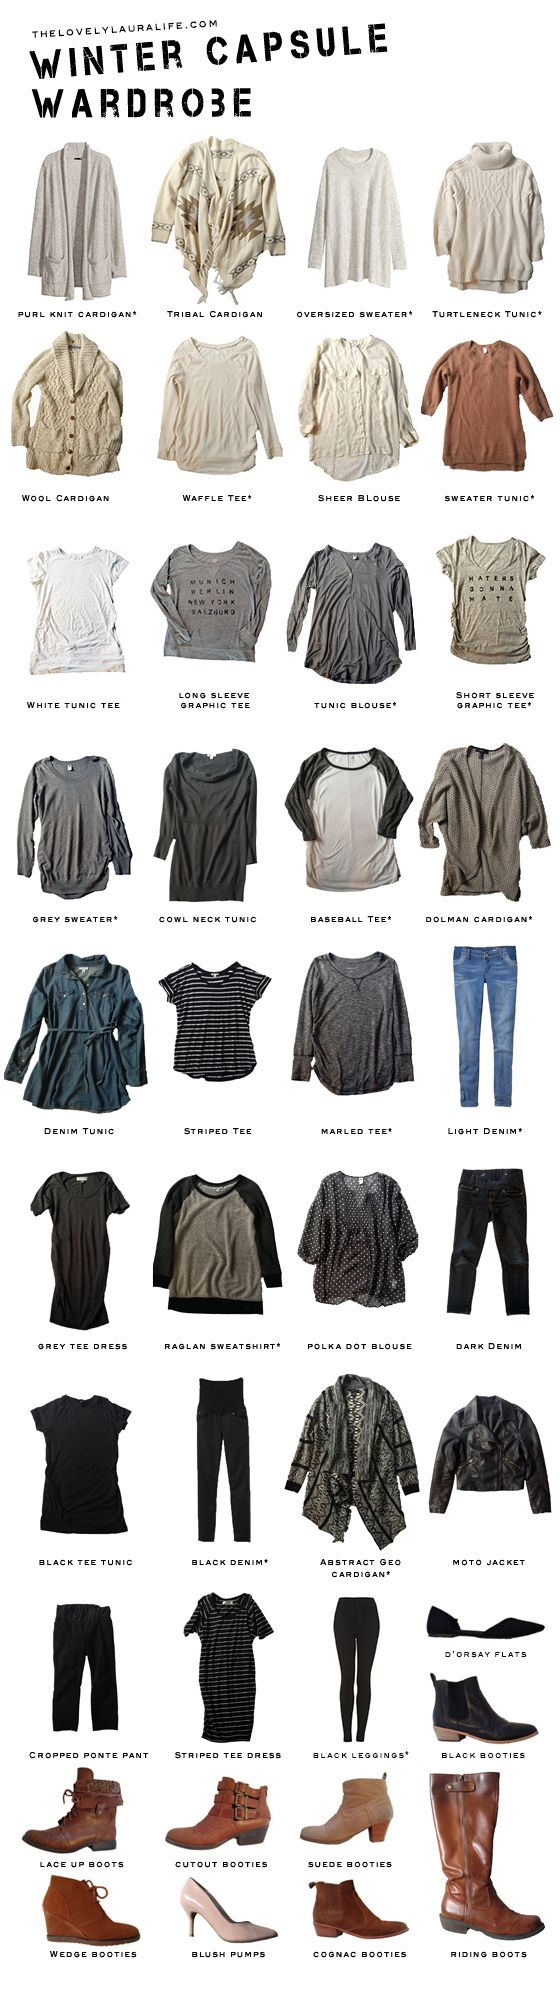 my capsule wardrobe / winter 2014